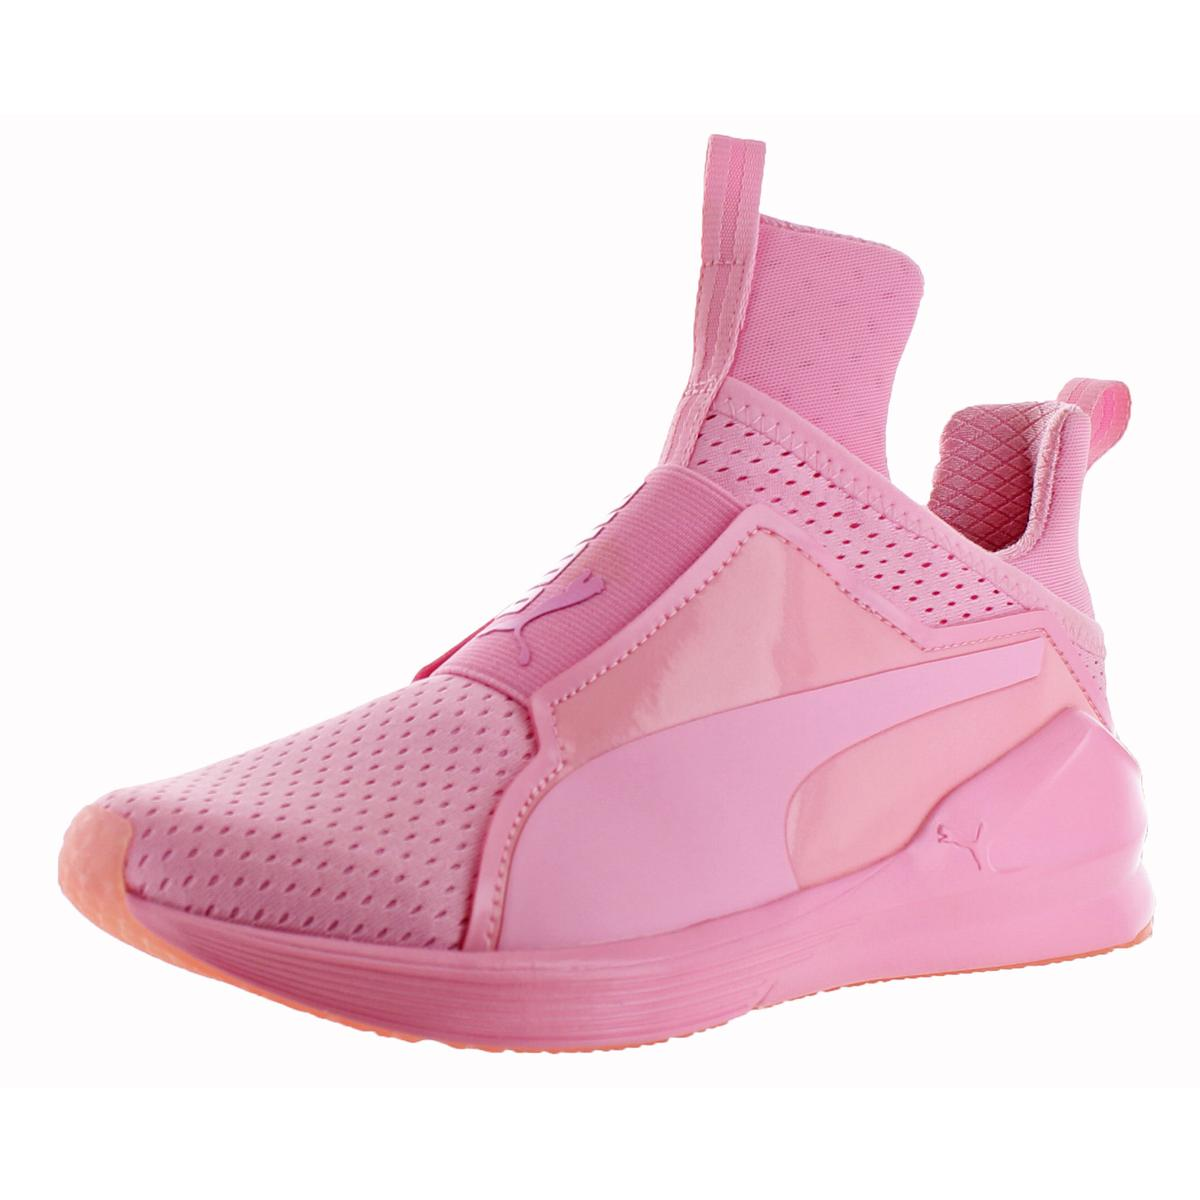 Puma Fierce Bright Kylie Jenner Women's Cross Training High Top Shoes by Puma